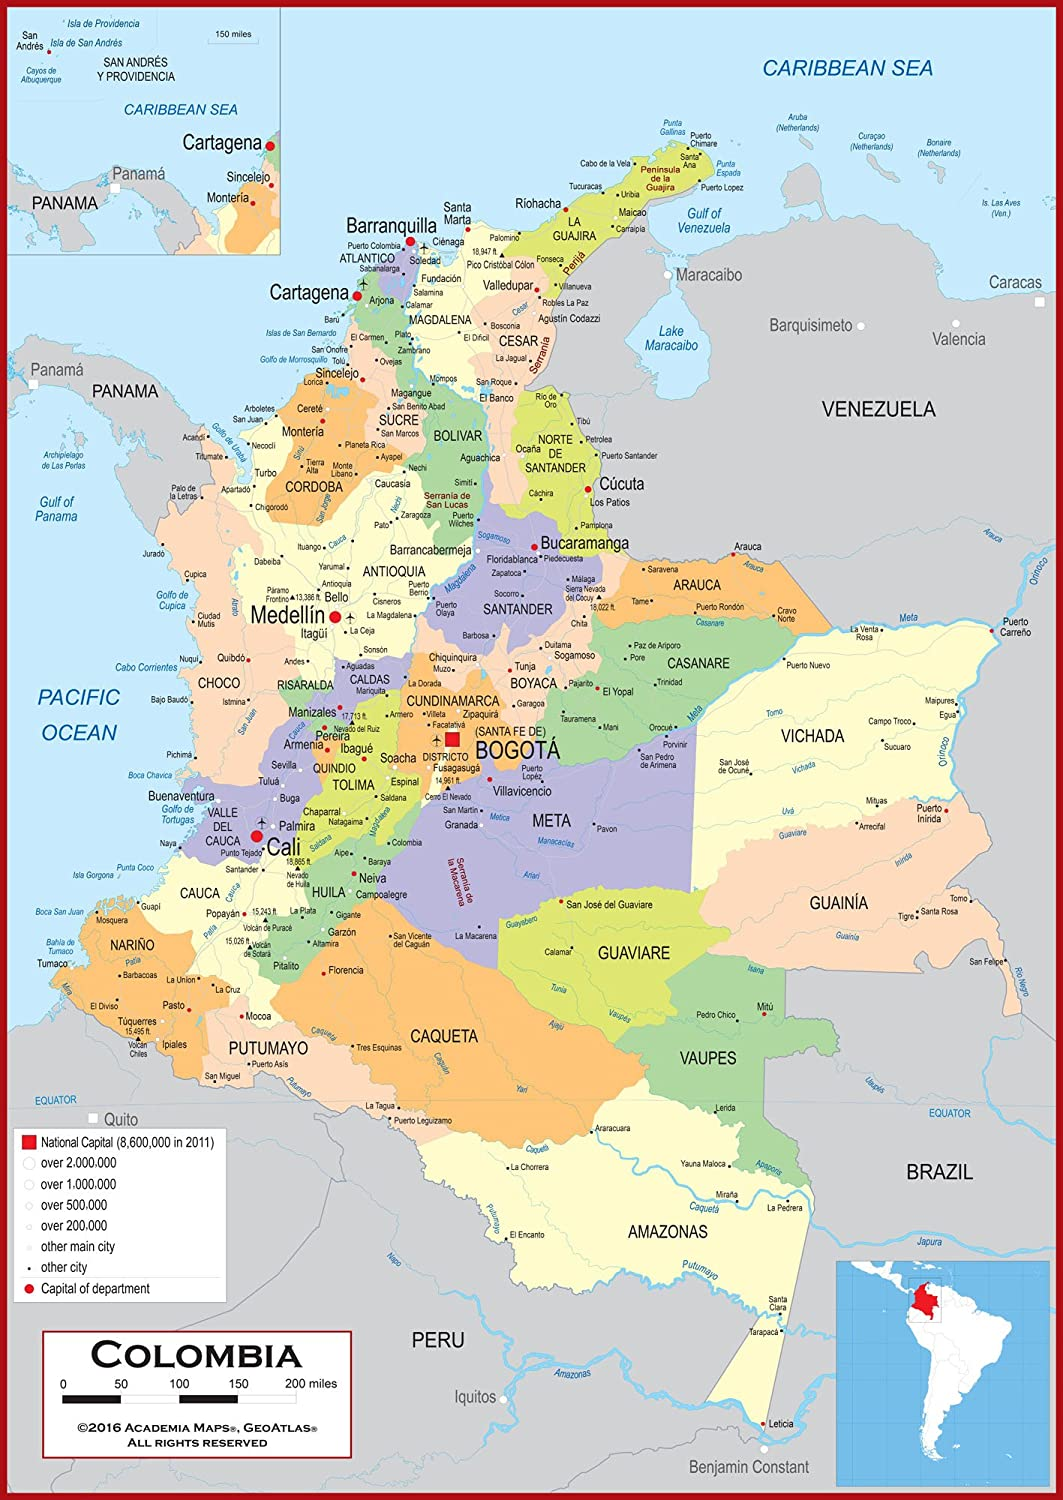 Amazon.com : Academia Maps - Wall Map of Colombia - Fully Laminated - Classroom Style - Several sizes! : Office Products